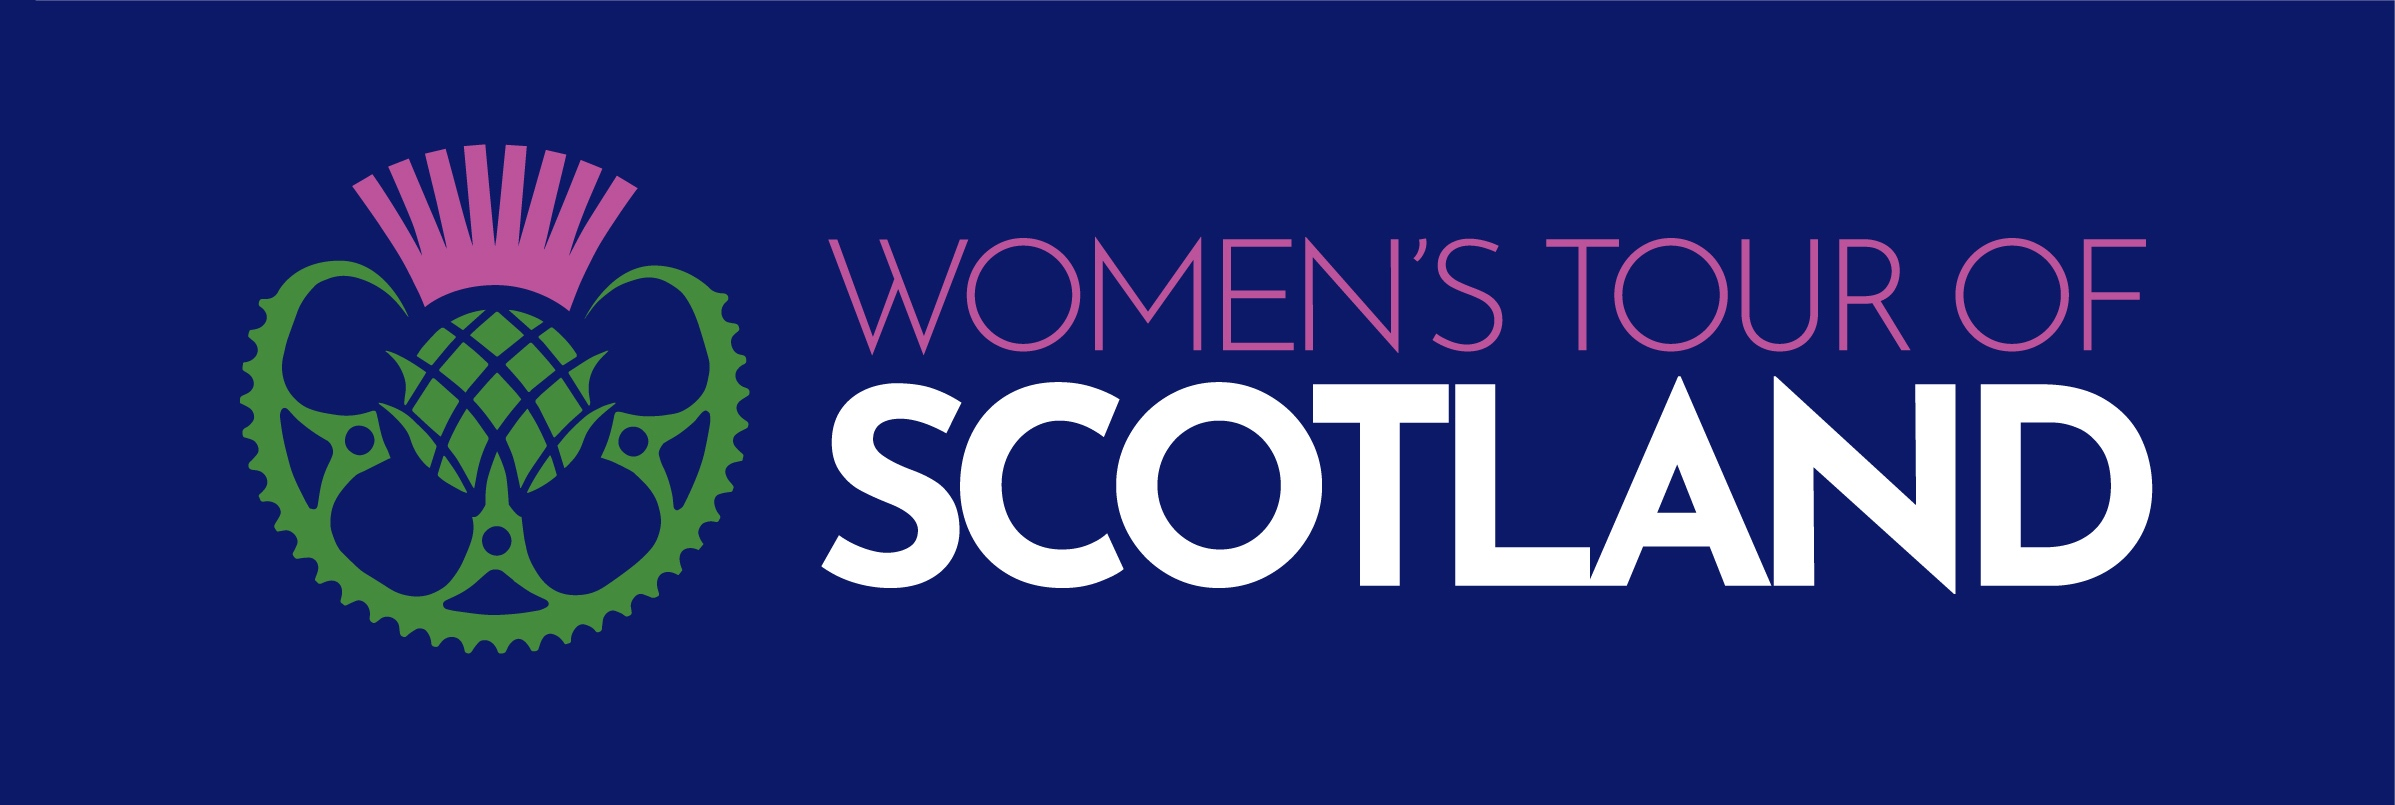 Women's Tour of Scotland | Online Shop